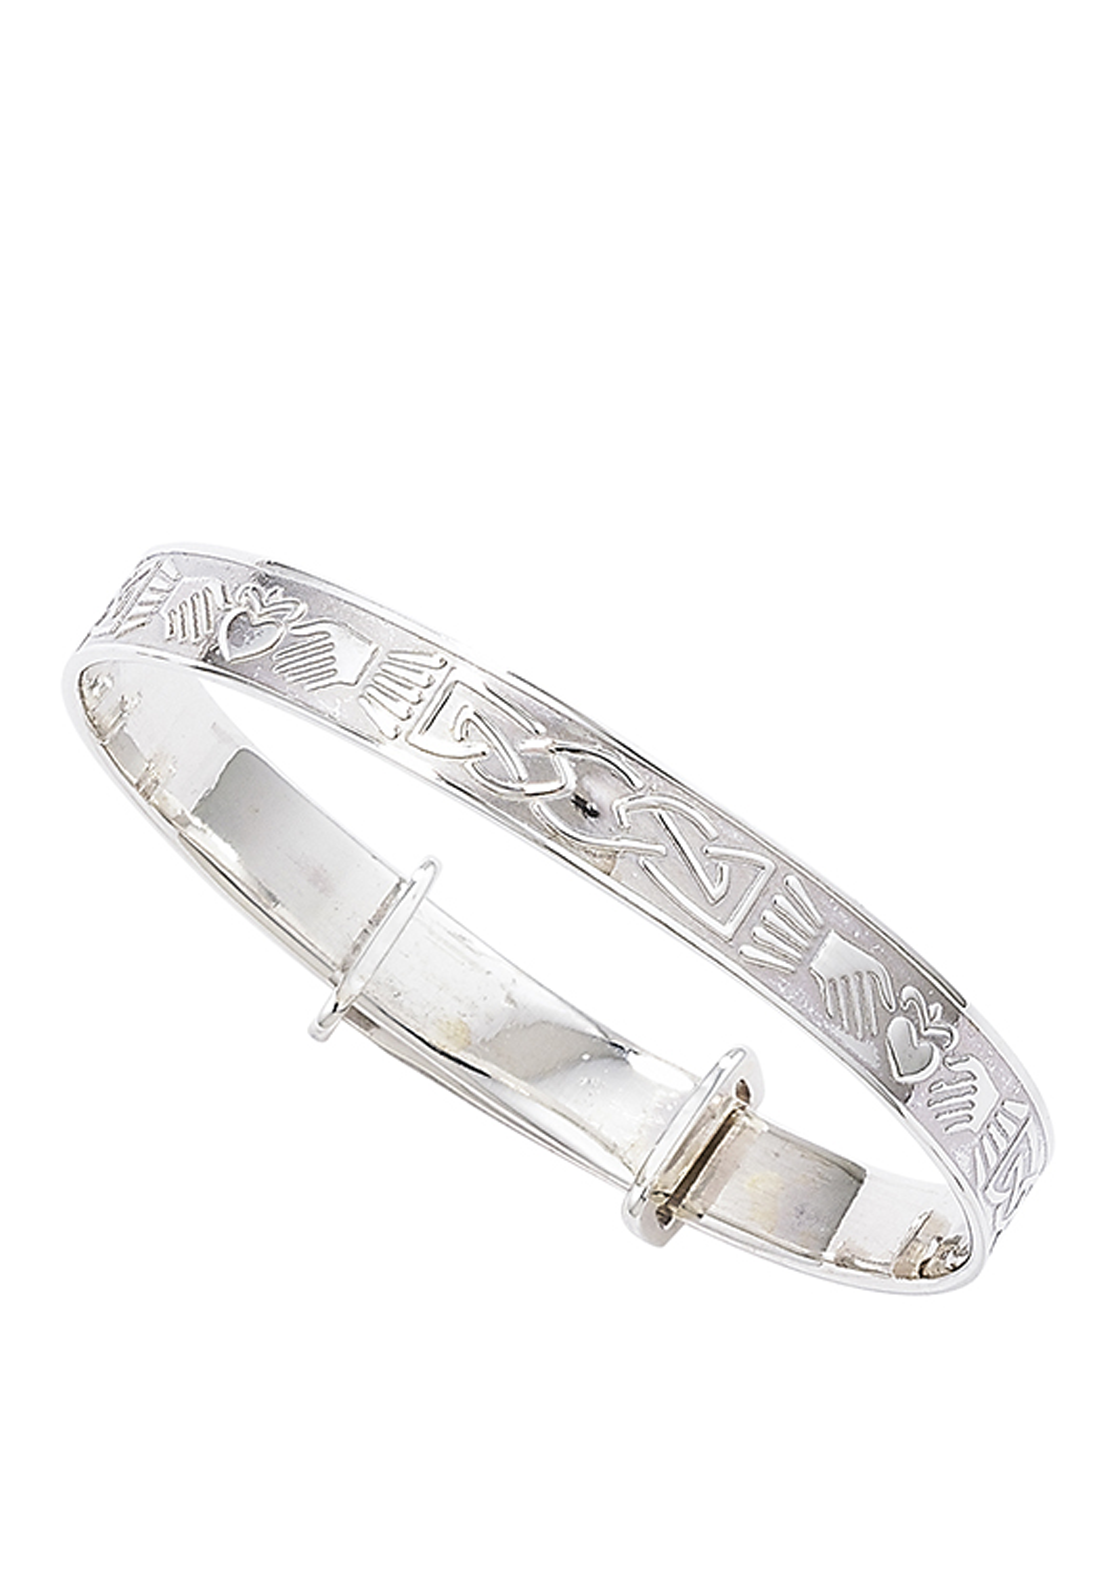 Kids Sterling Silver Claddagh Bangle